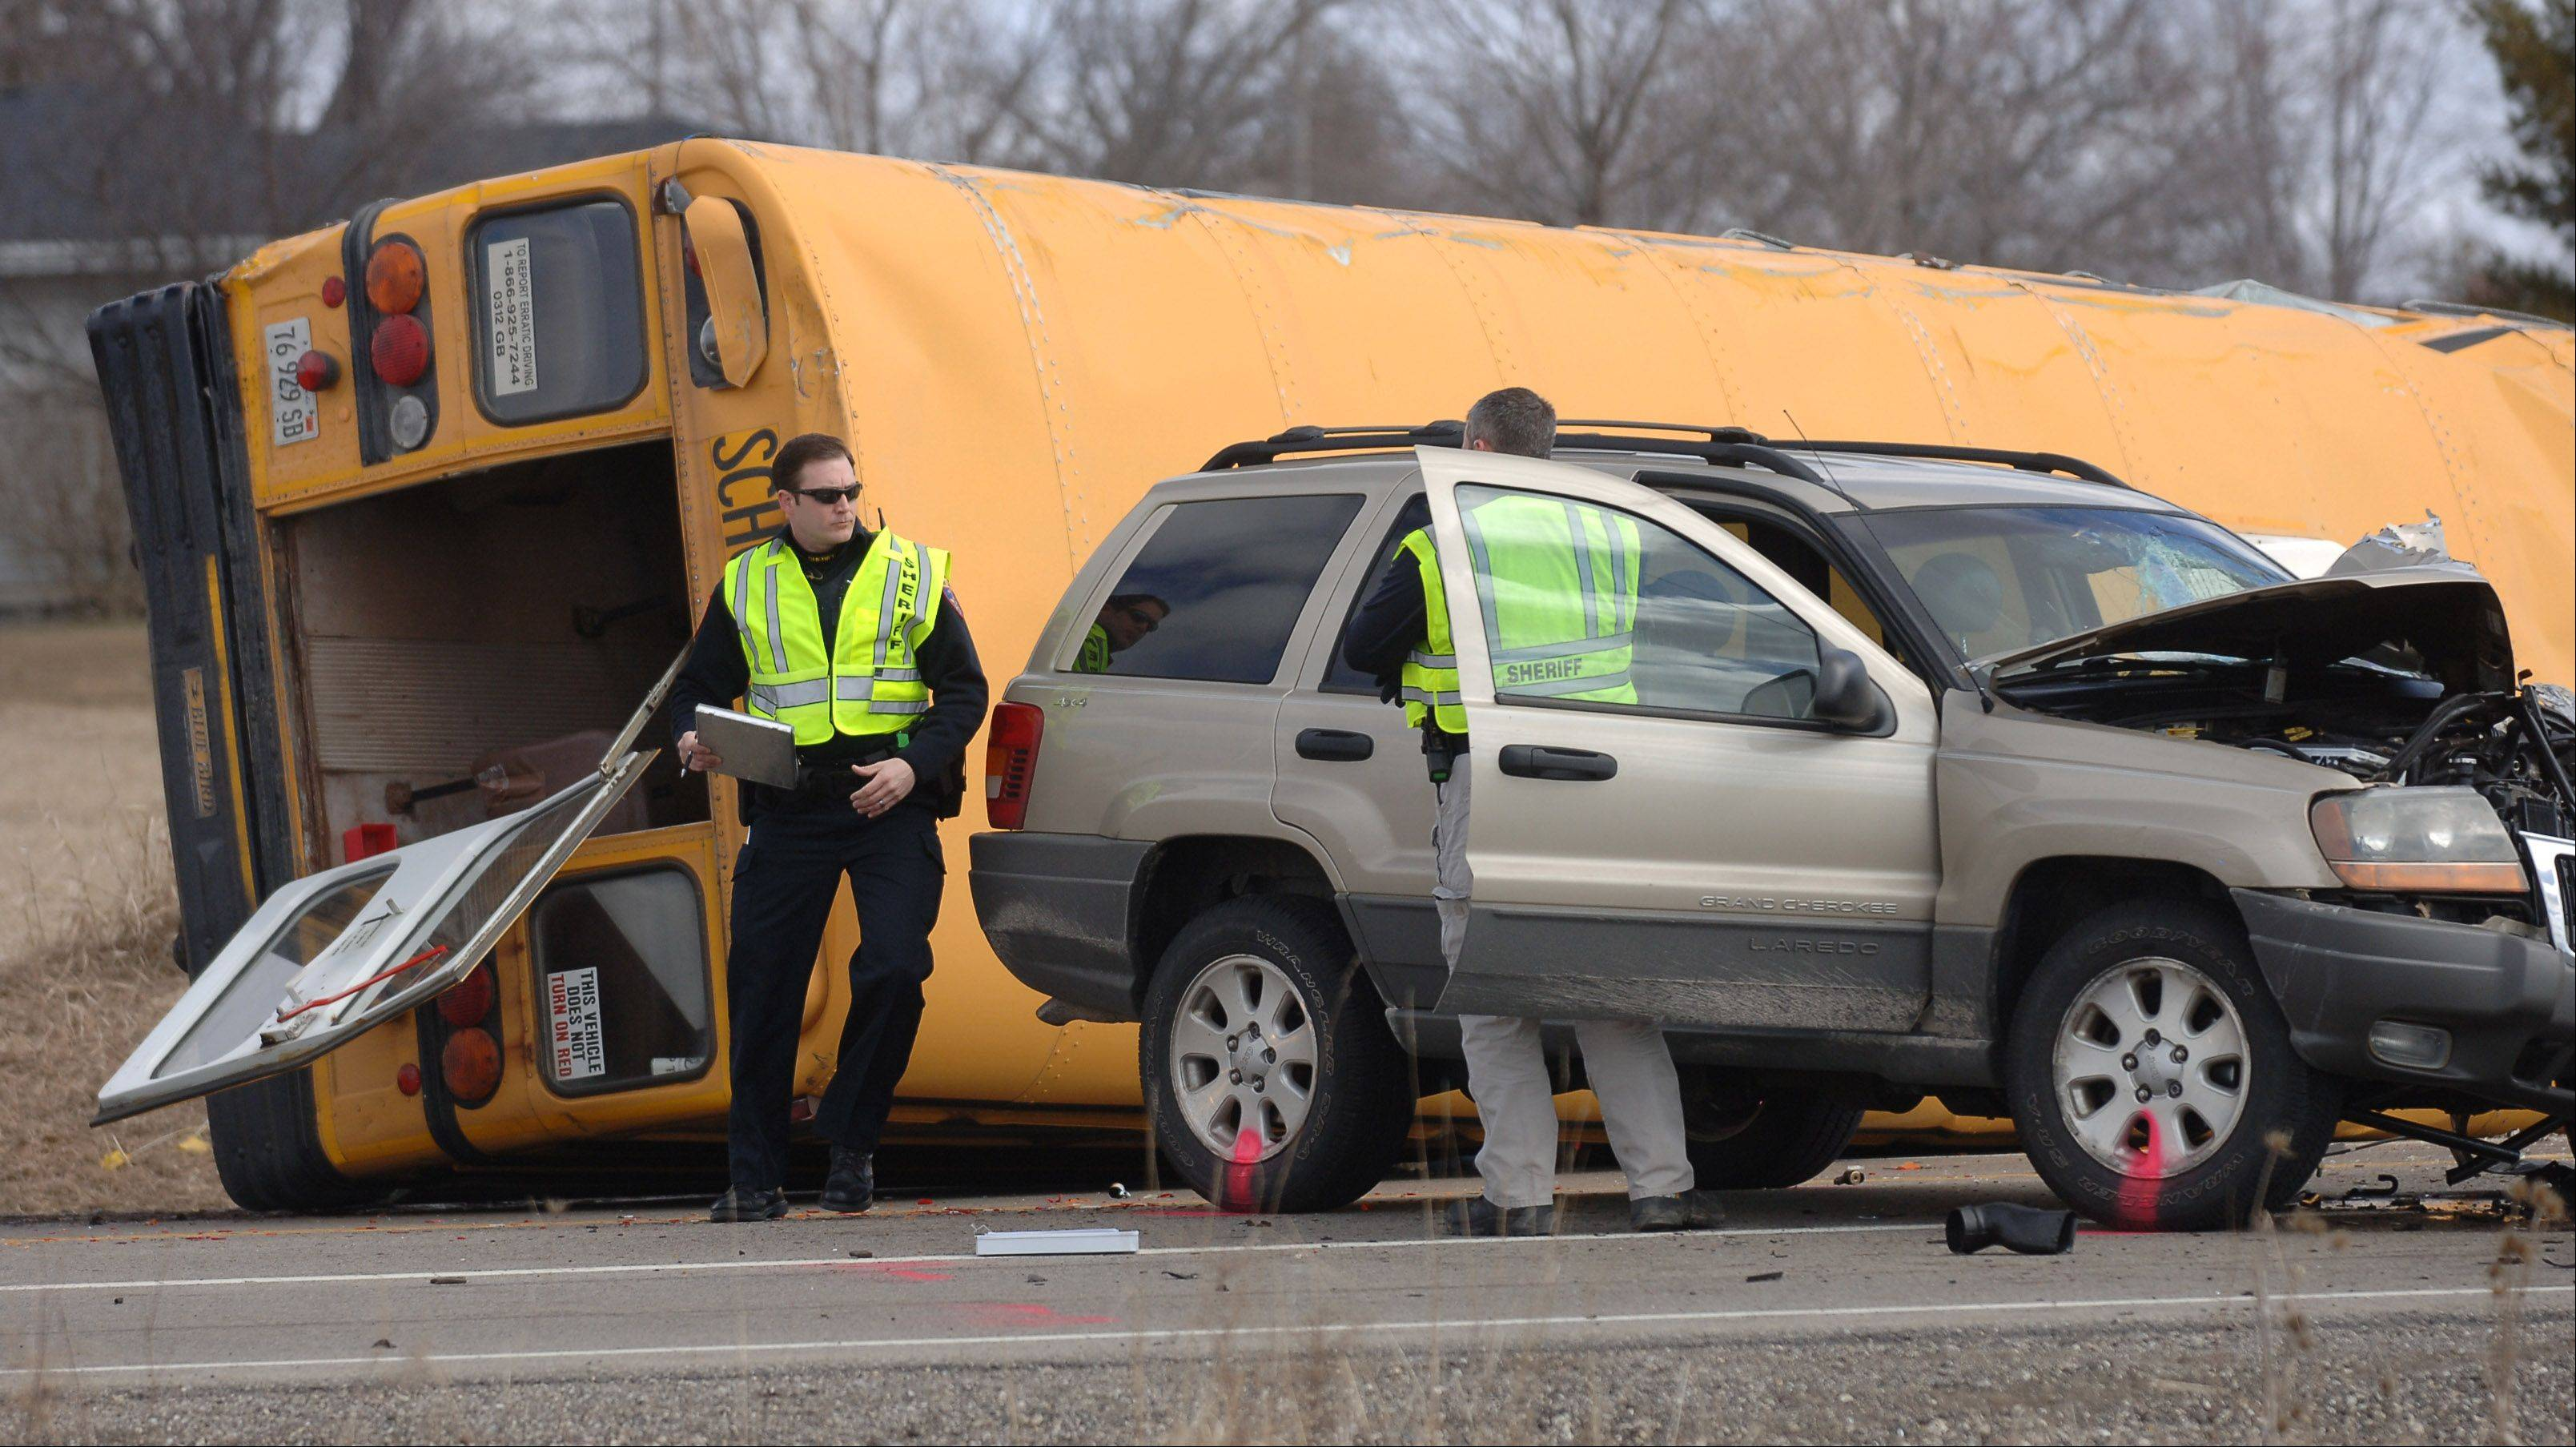 No charges in fatal bus crash; investigation continues